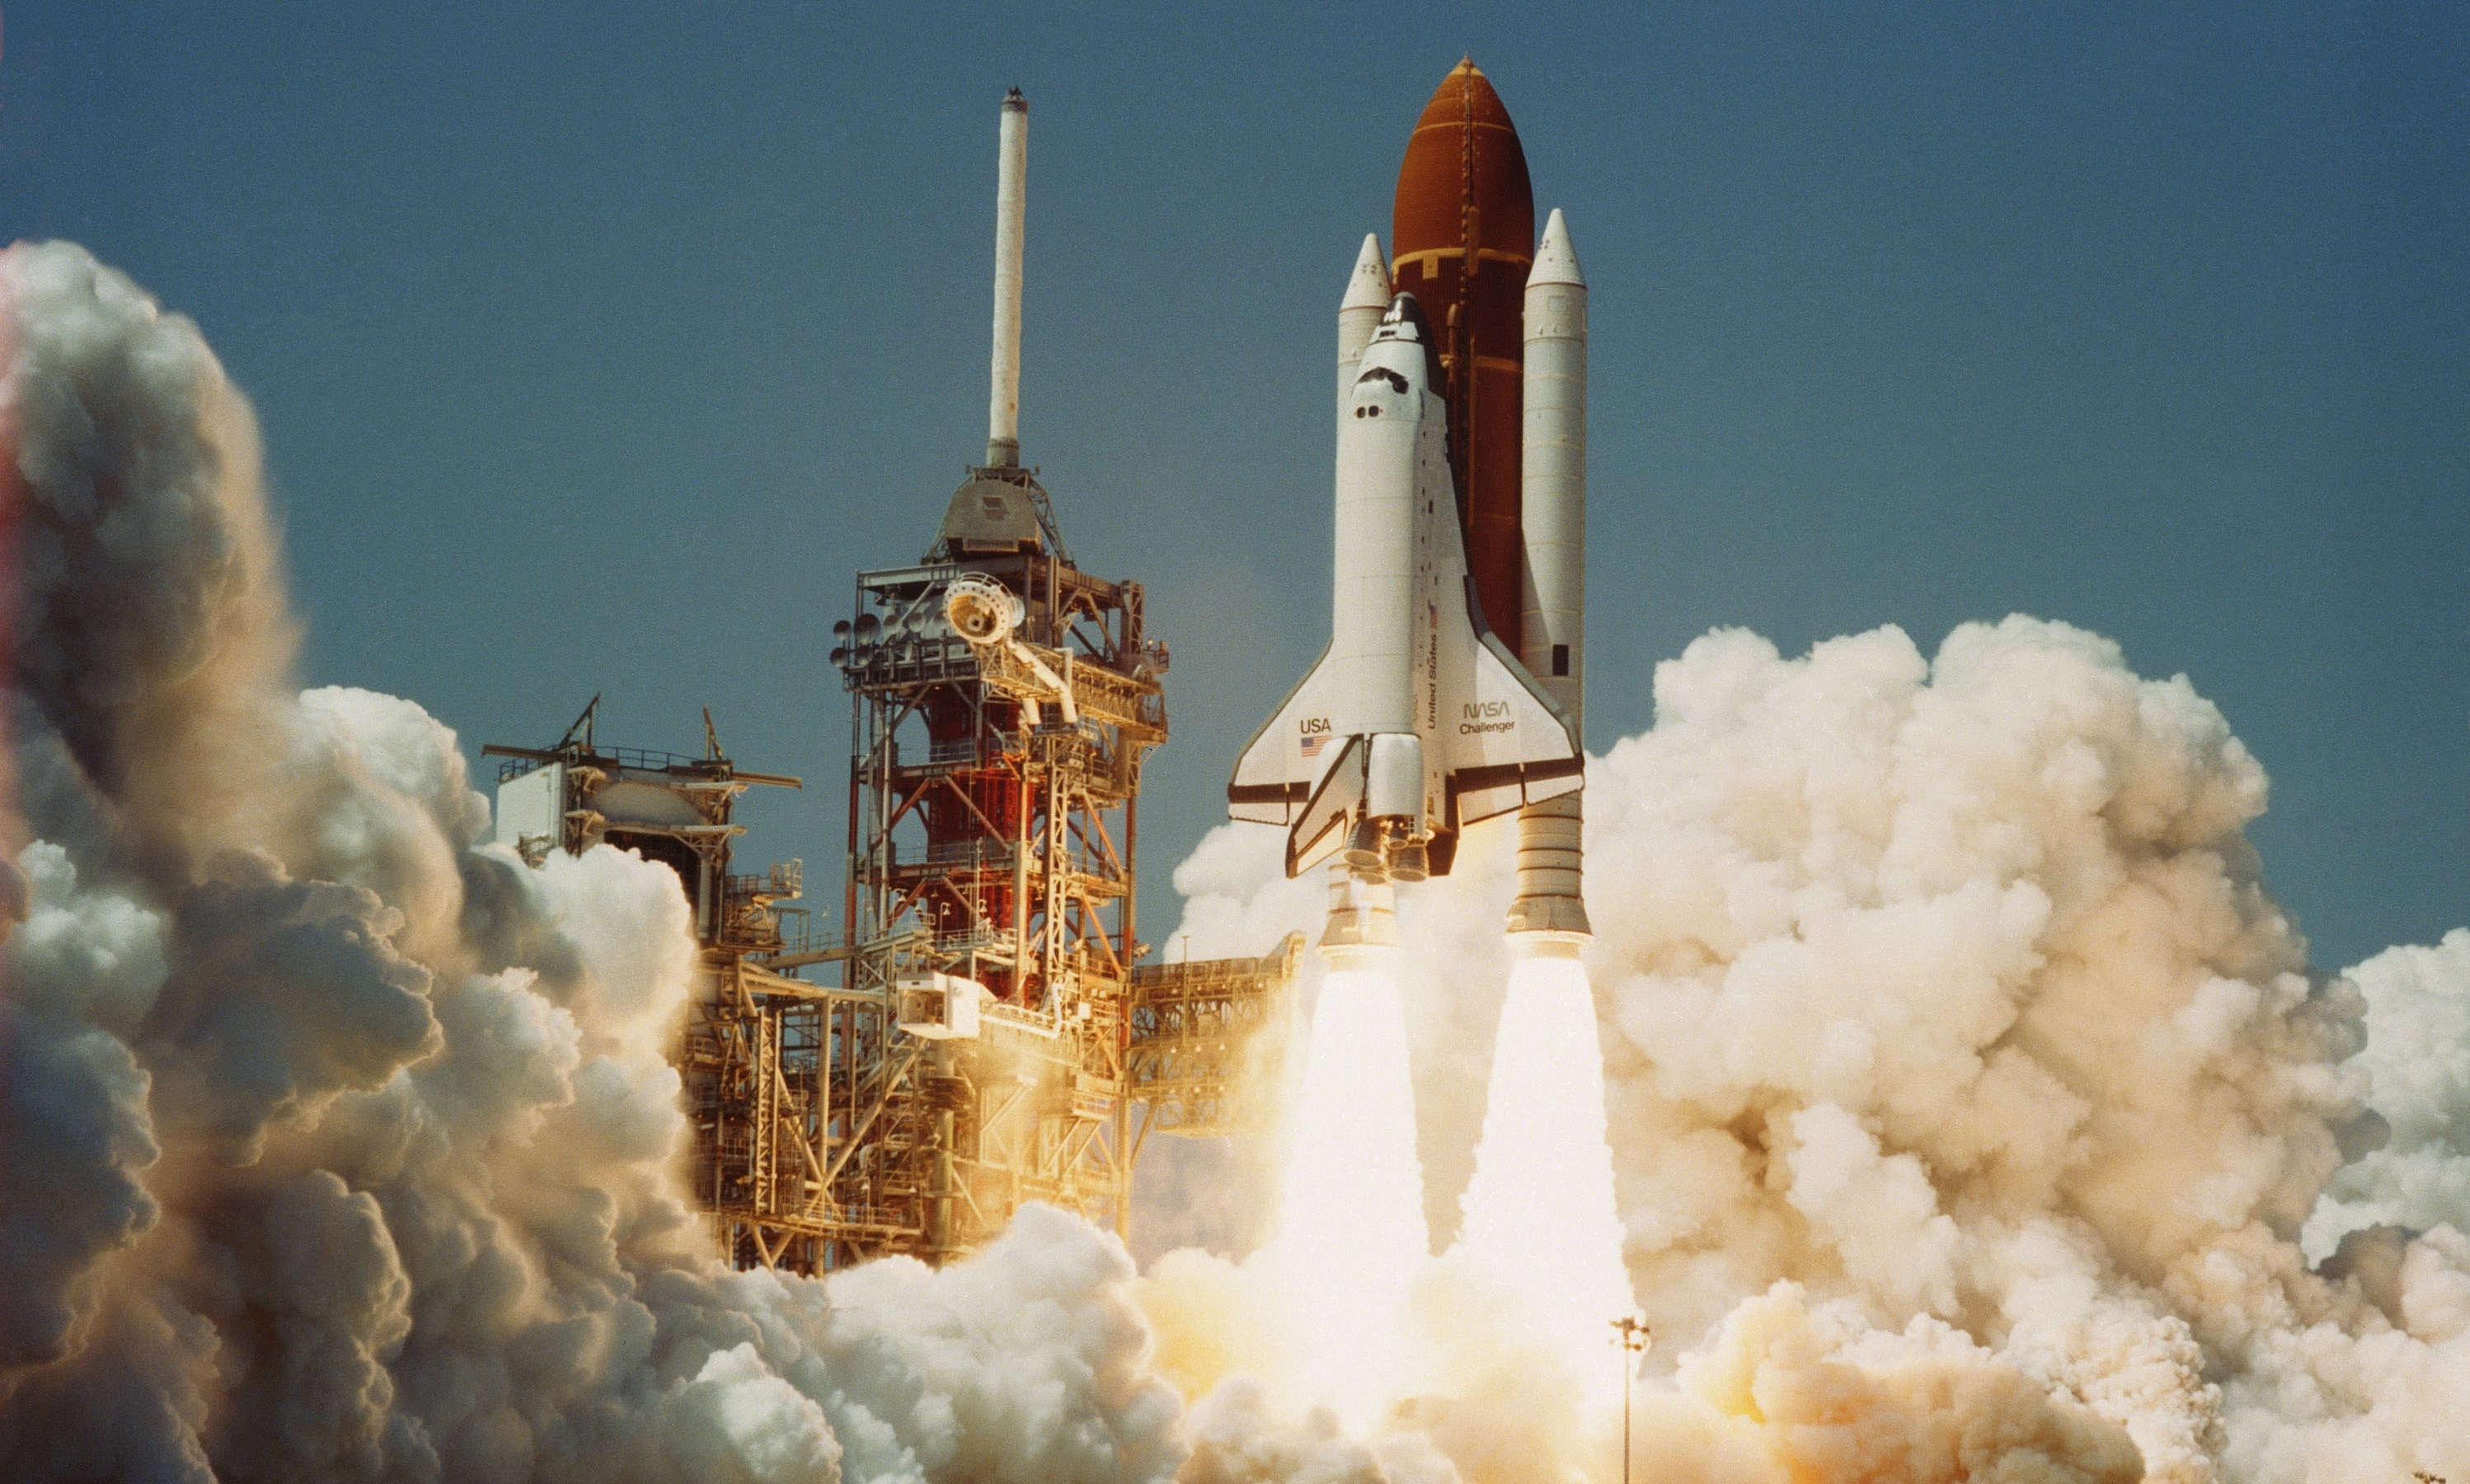 space shuttle challenger explosion teacher - photo #24